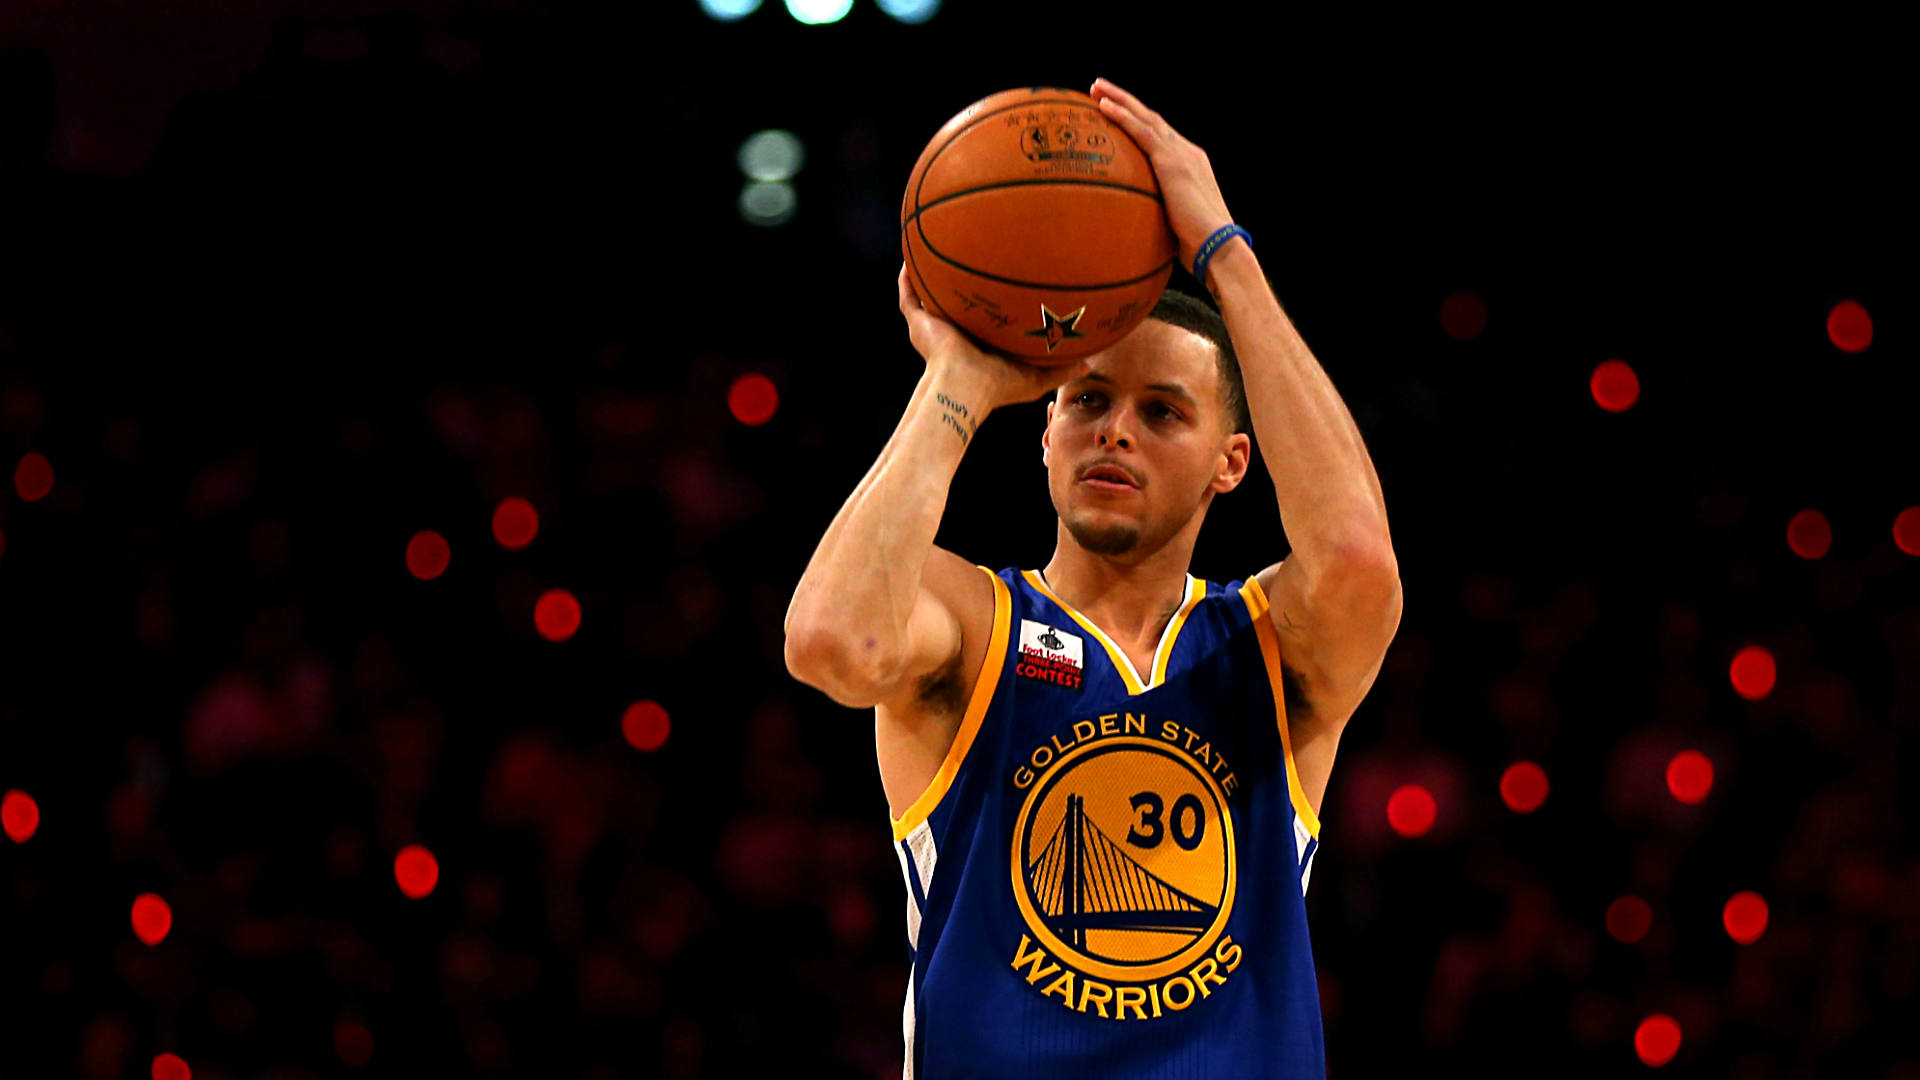 steph curry desktop wallpaper 247